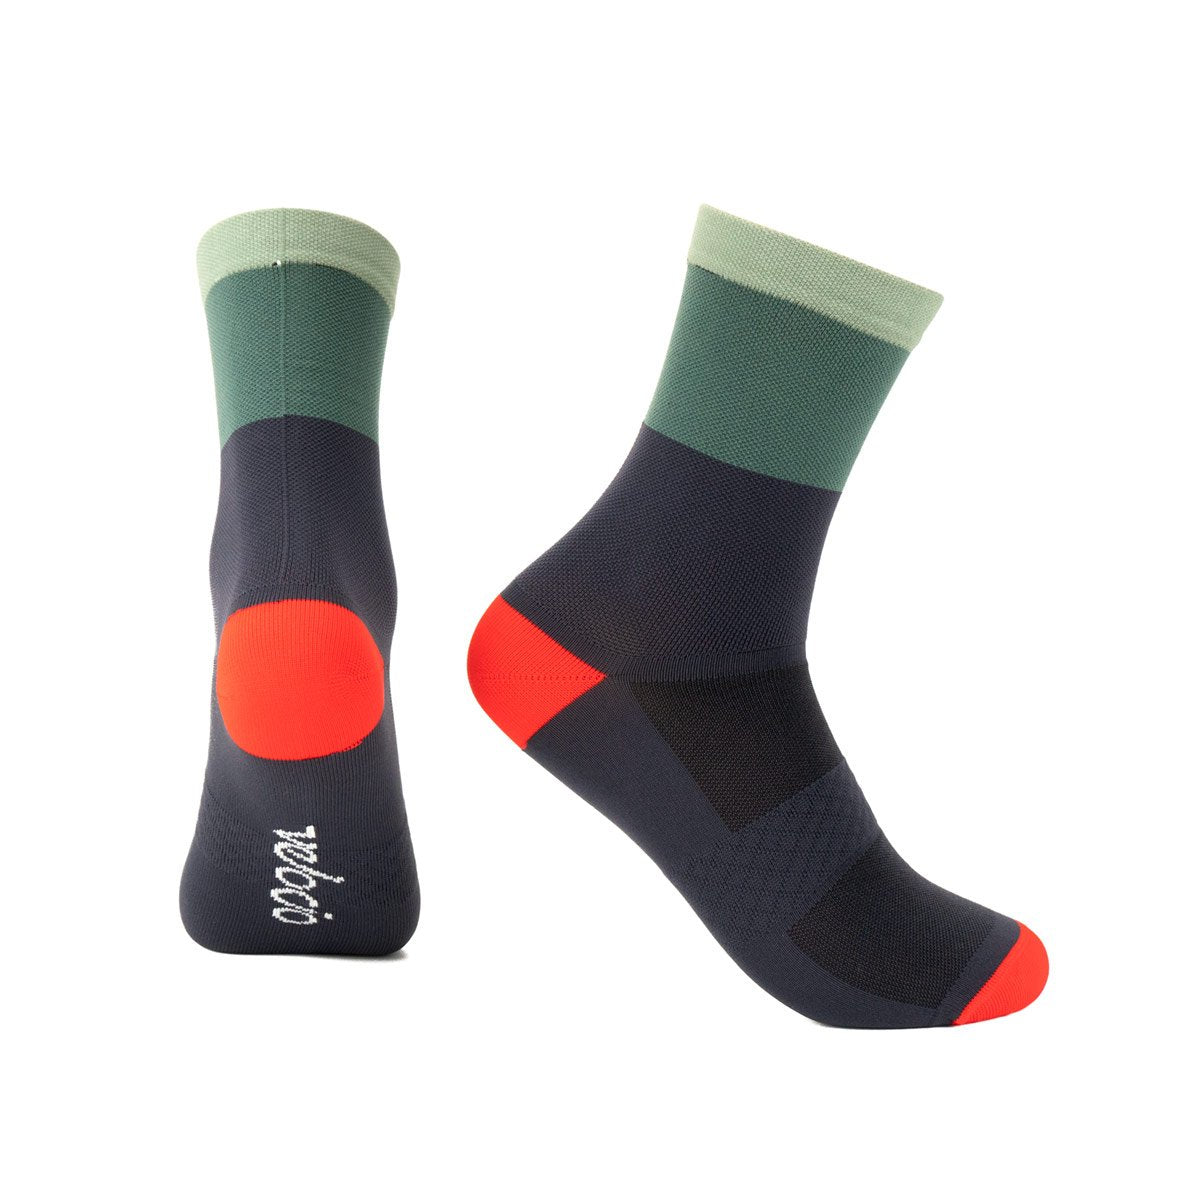 Velocio Signature Socks